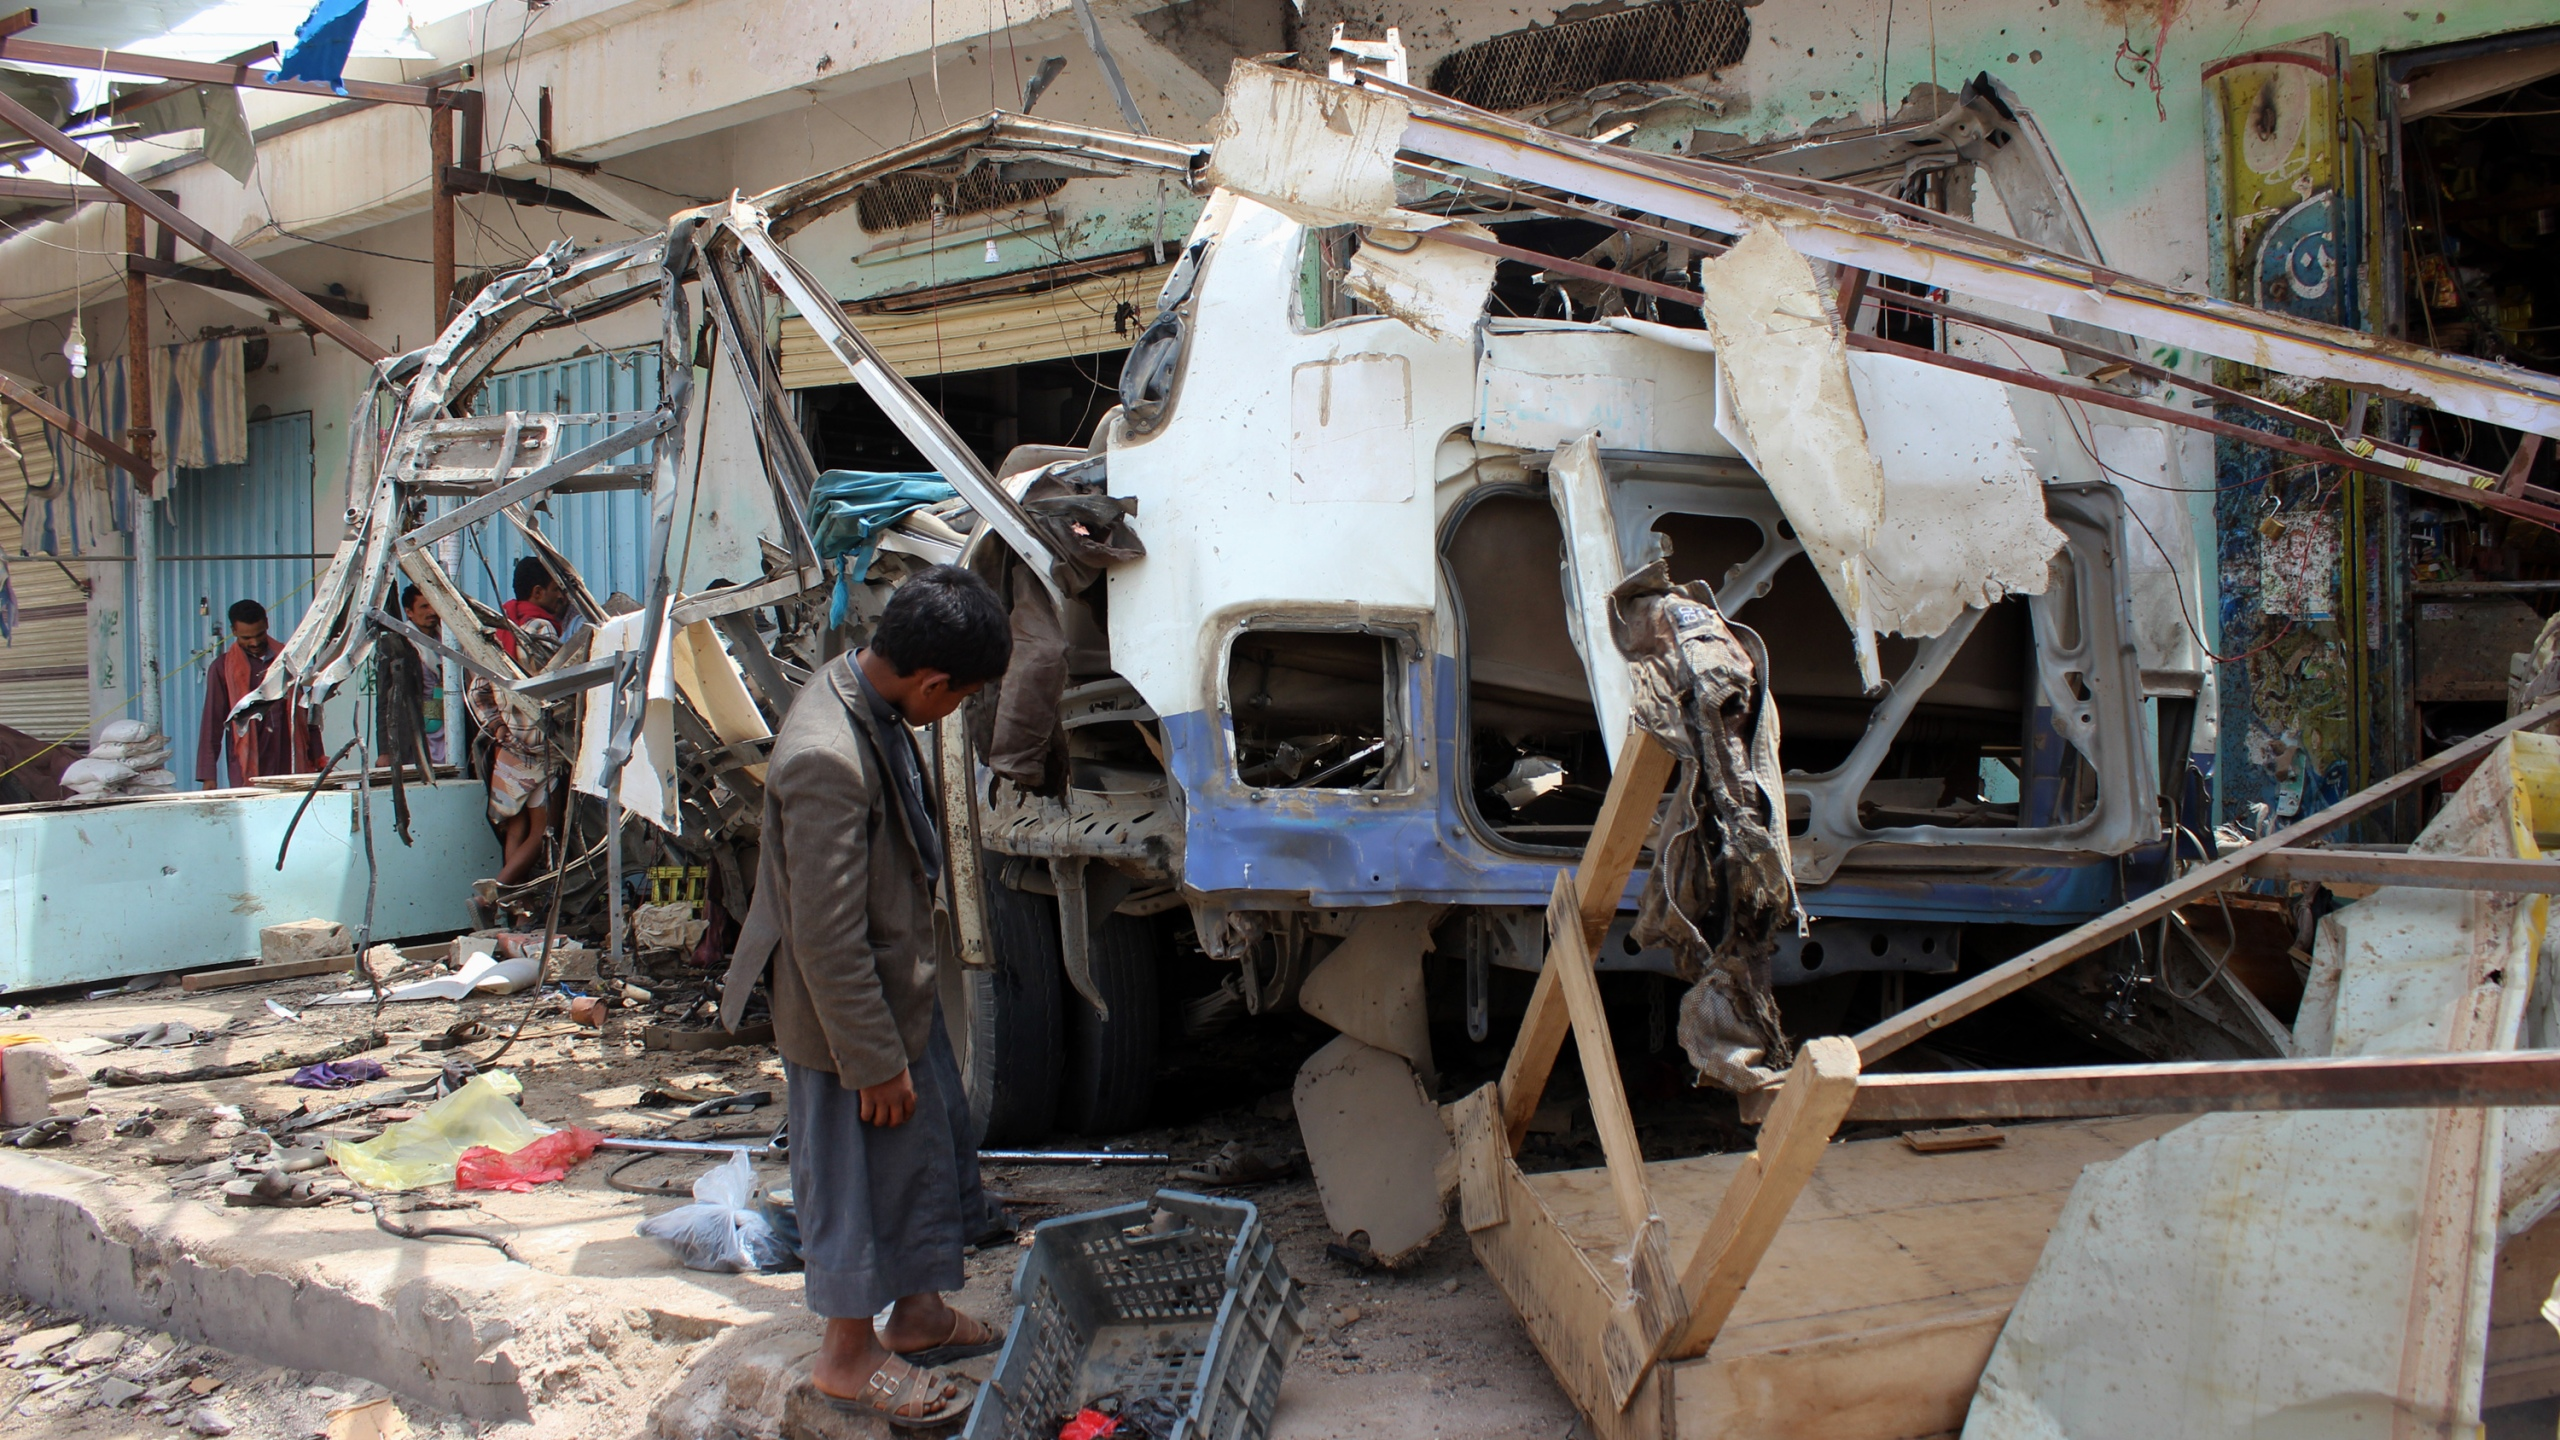 A Yemeni child stands next to the destroyed bus at the site of a Saudi-led coalition air strike, that targeted the Dahyan market the previous day in the Huthi rebels' stronghold province of Saada on August 10, 2018. (Credit: STRINGER/AFP/Getty Images)